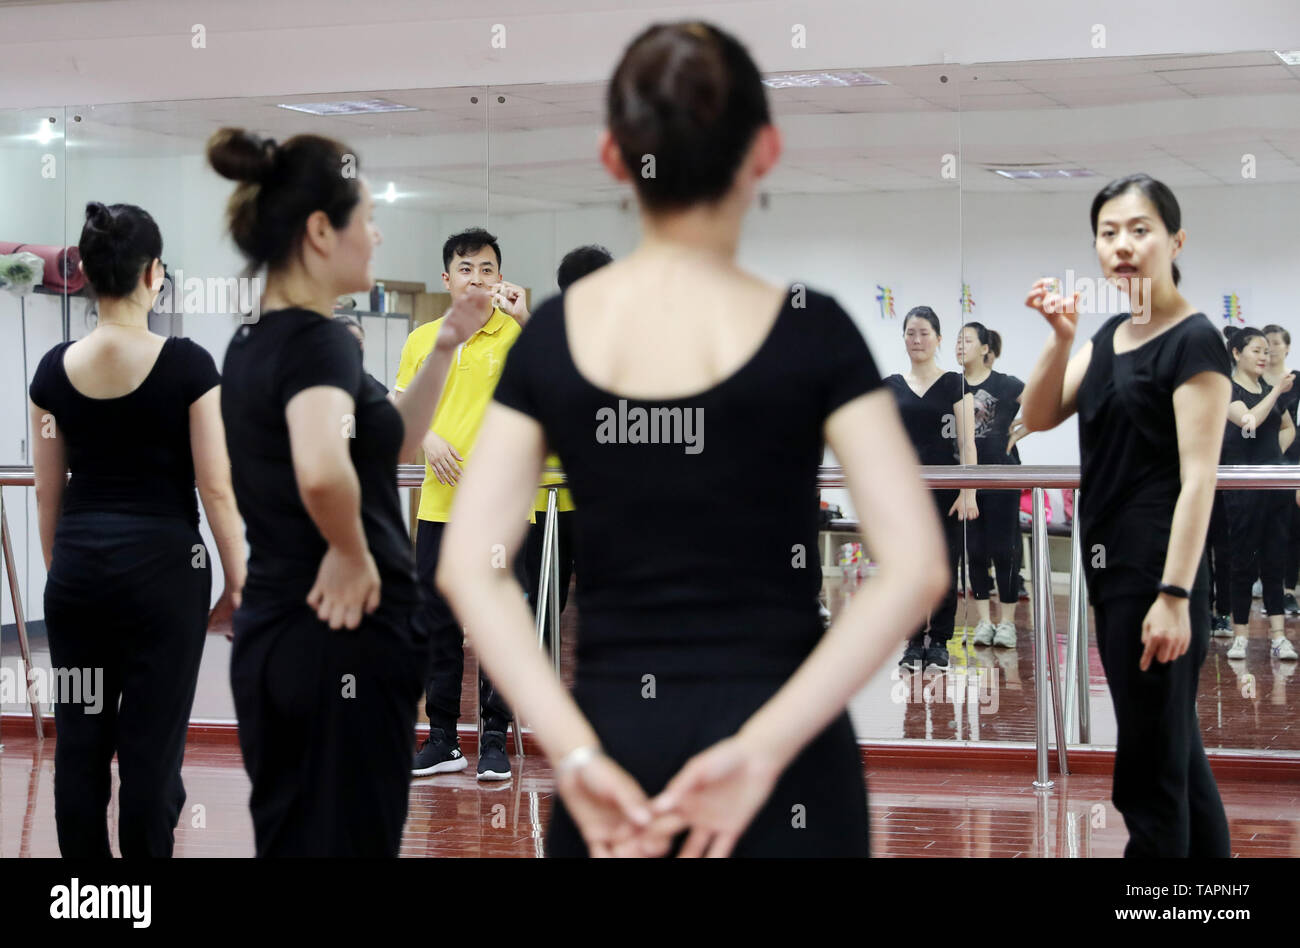 Shanghai, China's Shanghai. 26th May, 2019. Liu Jianqiang (3rd L), a teacher from the College of Dance of Shanghai Theatre Academy, conveys information through one of team members at a dance class for hearing-impaired people in Minhang District, east China's Shanghai, May 26, 2019. Gumeicaiyun in Minhang District is a dance group composed of people with hearing impairment. The 20-member team, aged between 20 and 40, is trained weekly by teachers from the college of dance of Shanghai Theatre Academy. Credit: Fang Zhe/Xinhua/Alamy Live News - Stock Image